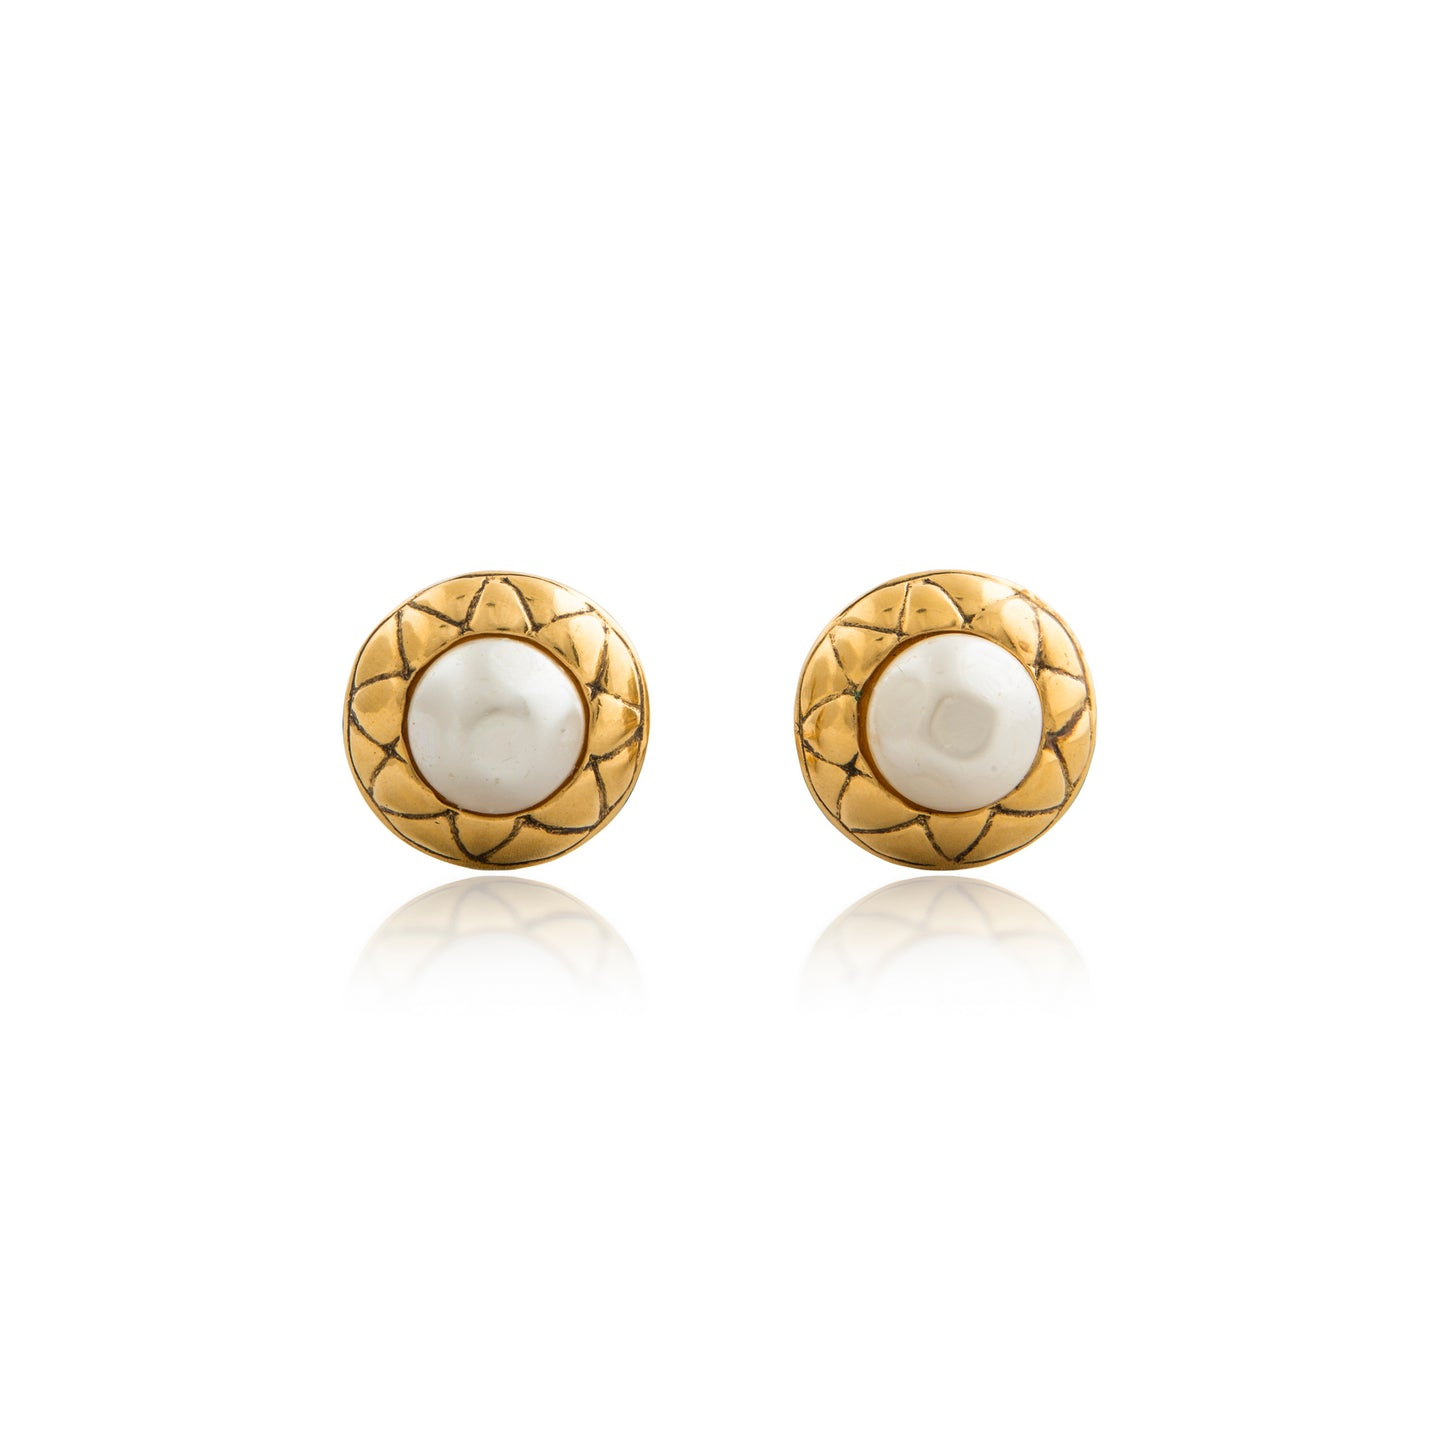 Vintage Chanel Pearl Quilted Earrings